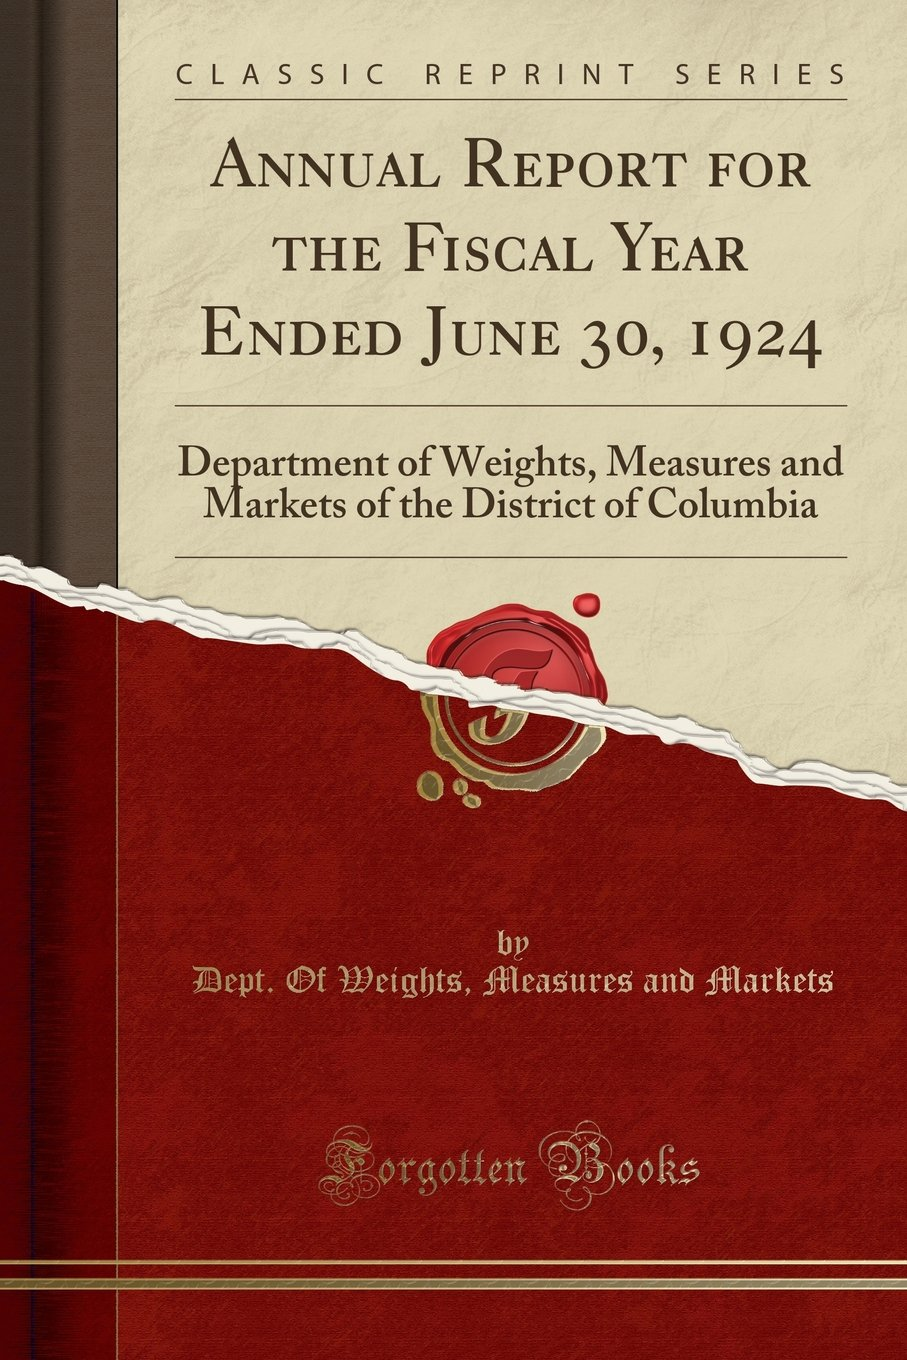 Read Online Annual Report for the Fiscal Year Ended June 30, 1924: Department of Weights, Measures and Markets of the District of Columbia (Classic Reprint) ebook